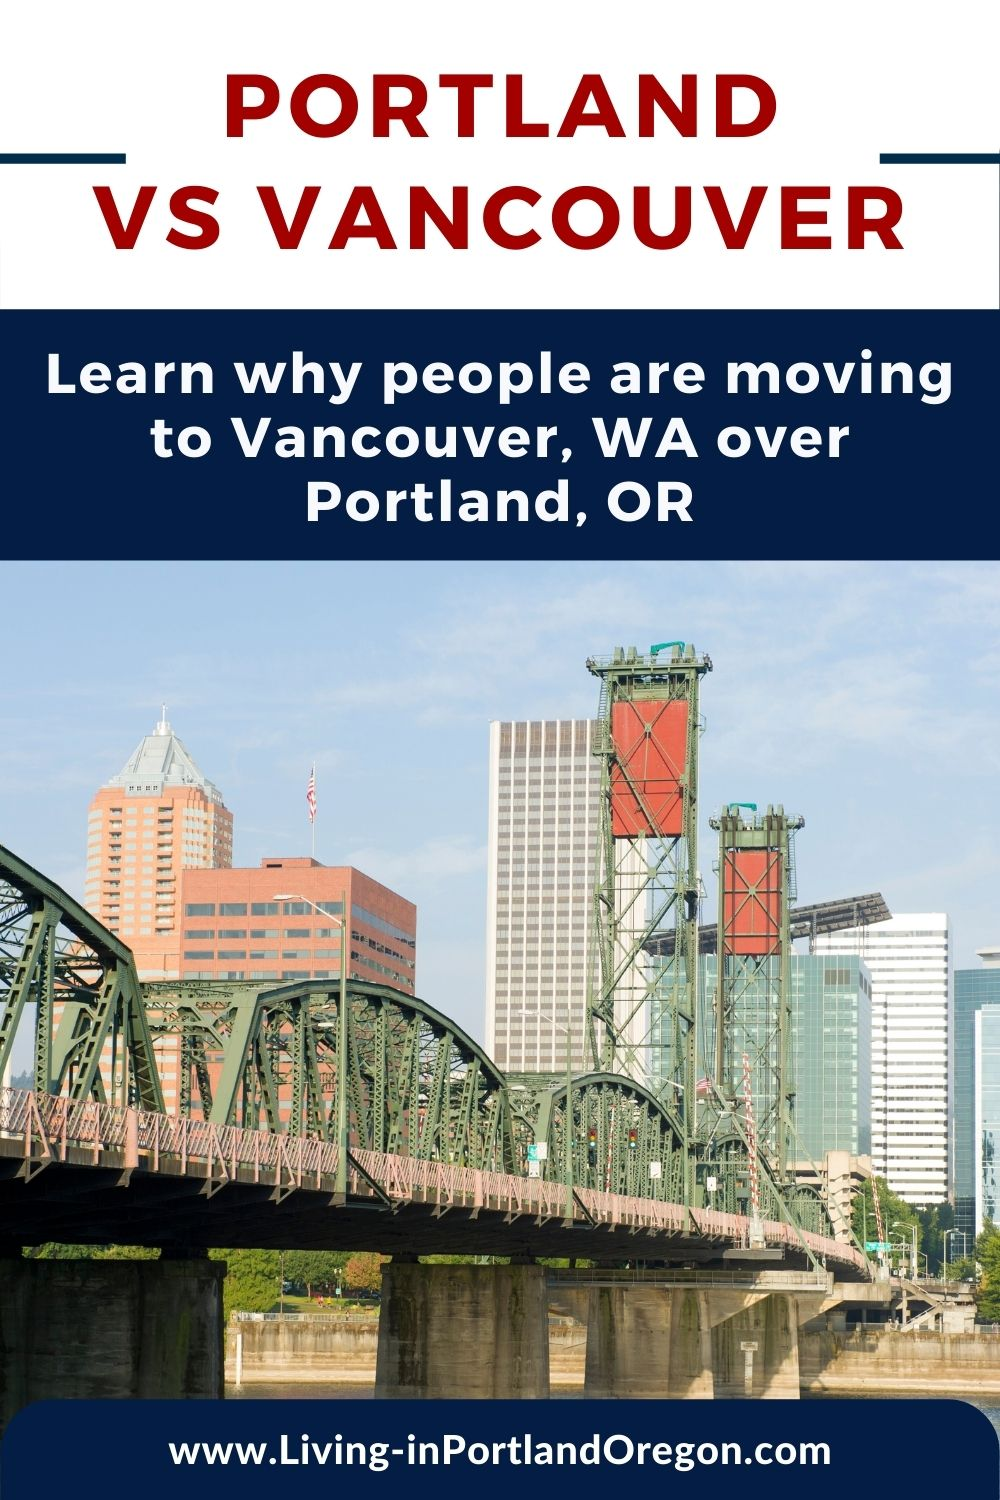 Why People are moving to Vancouver over PDX pins (2)